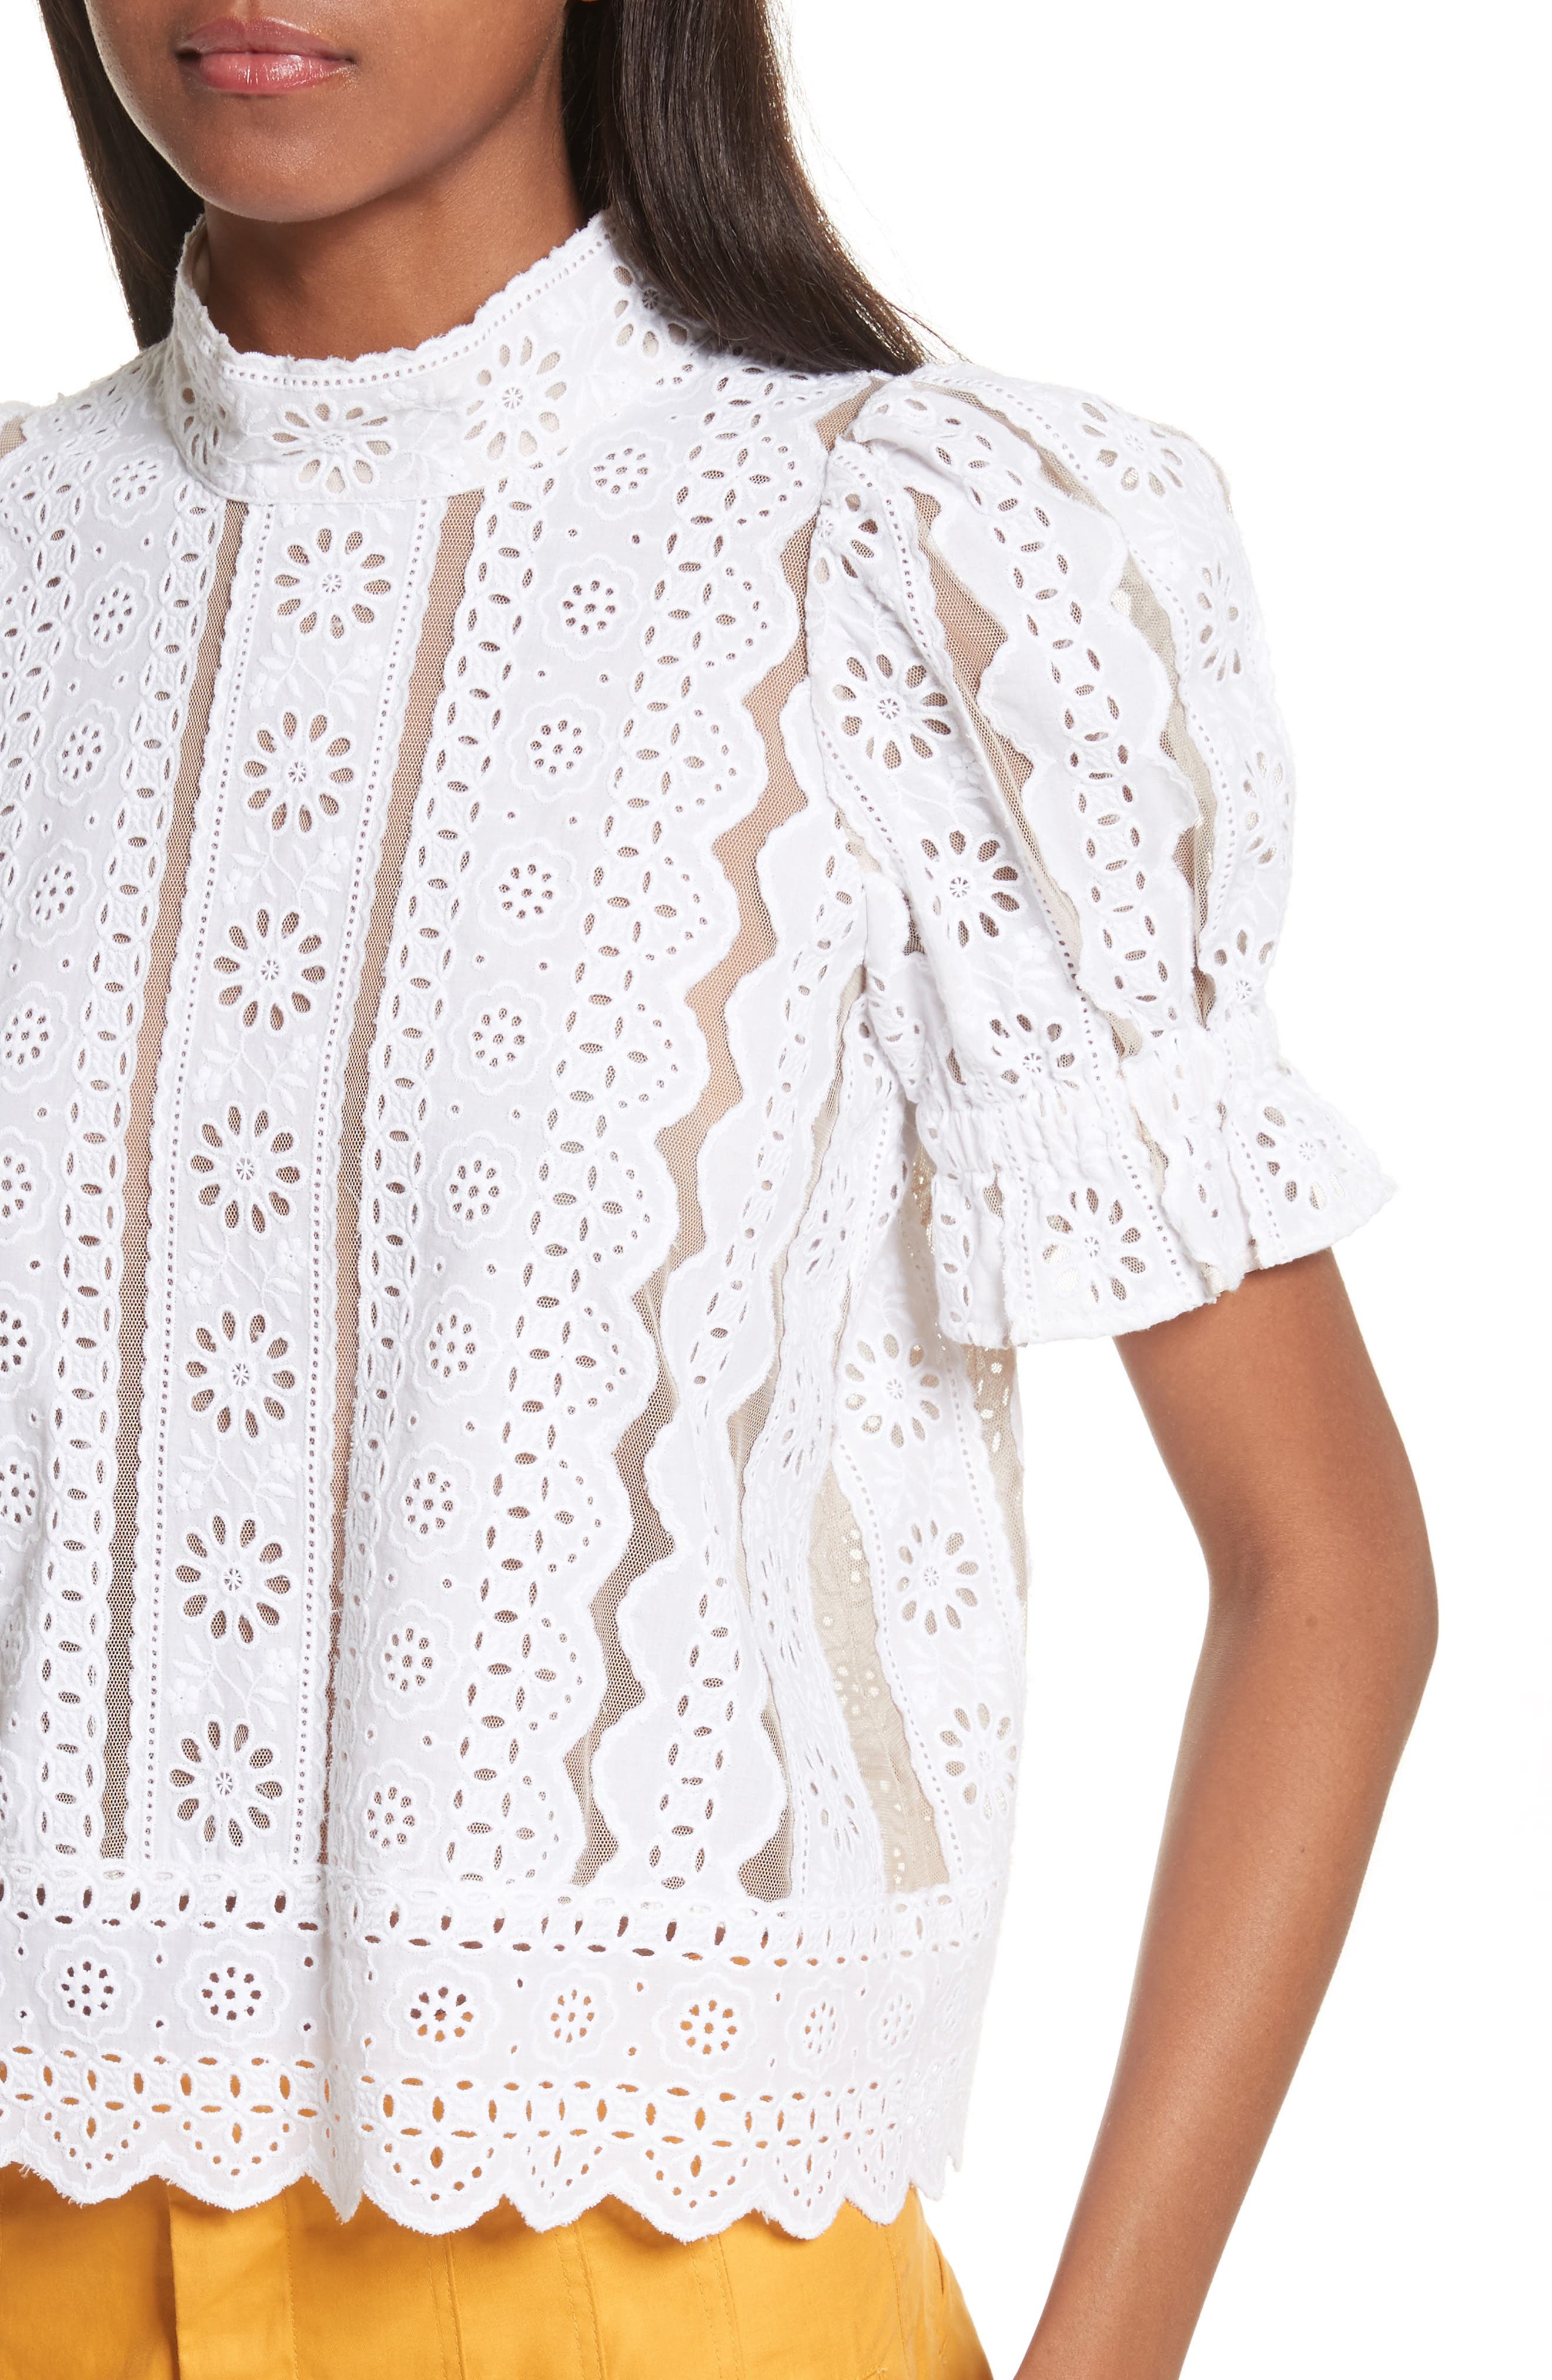 Luna Cotton Eyelet Top,                             Alternate thumbnail 5, color,                             White With Nude Mesh